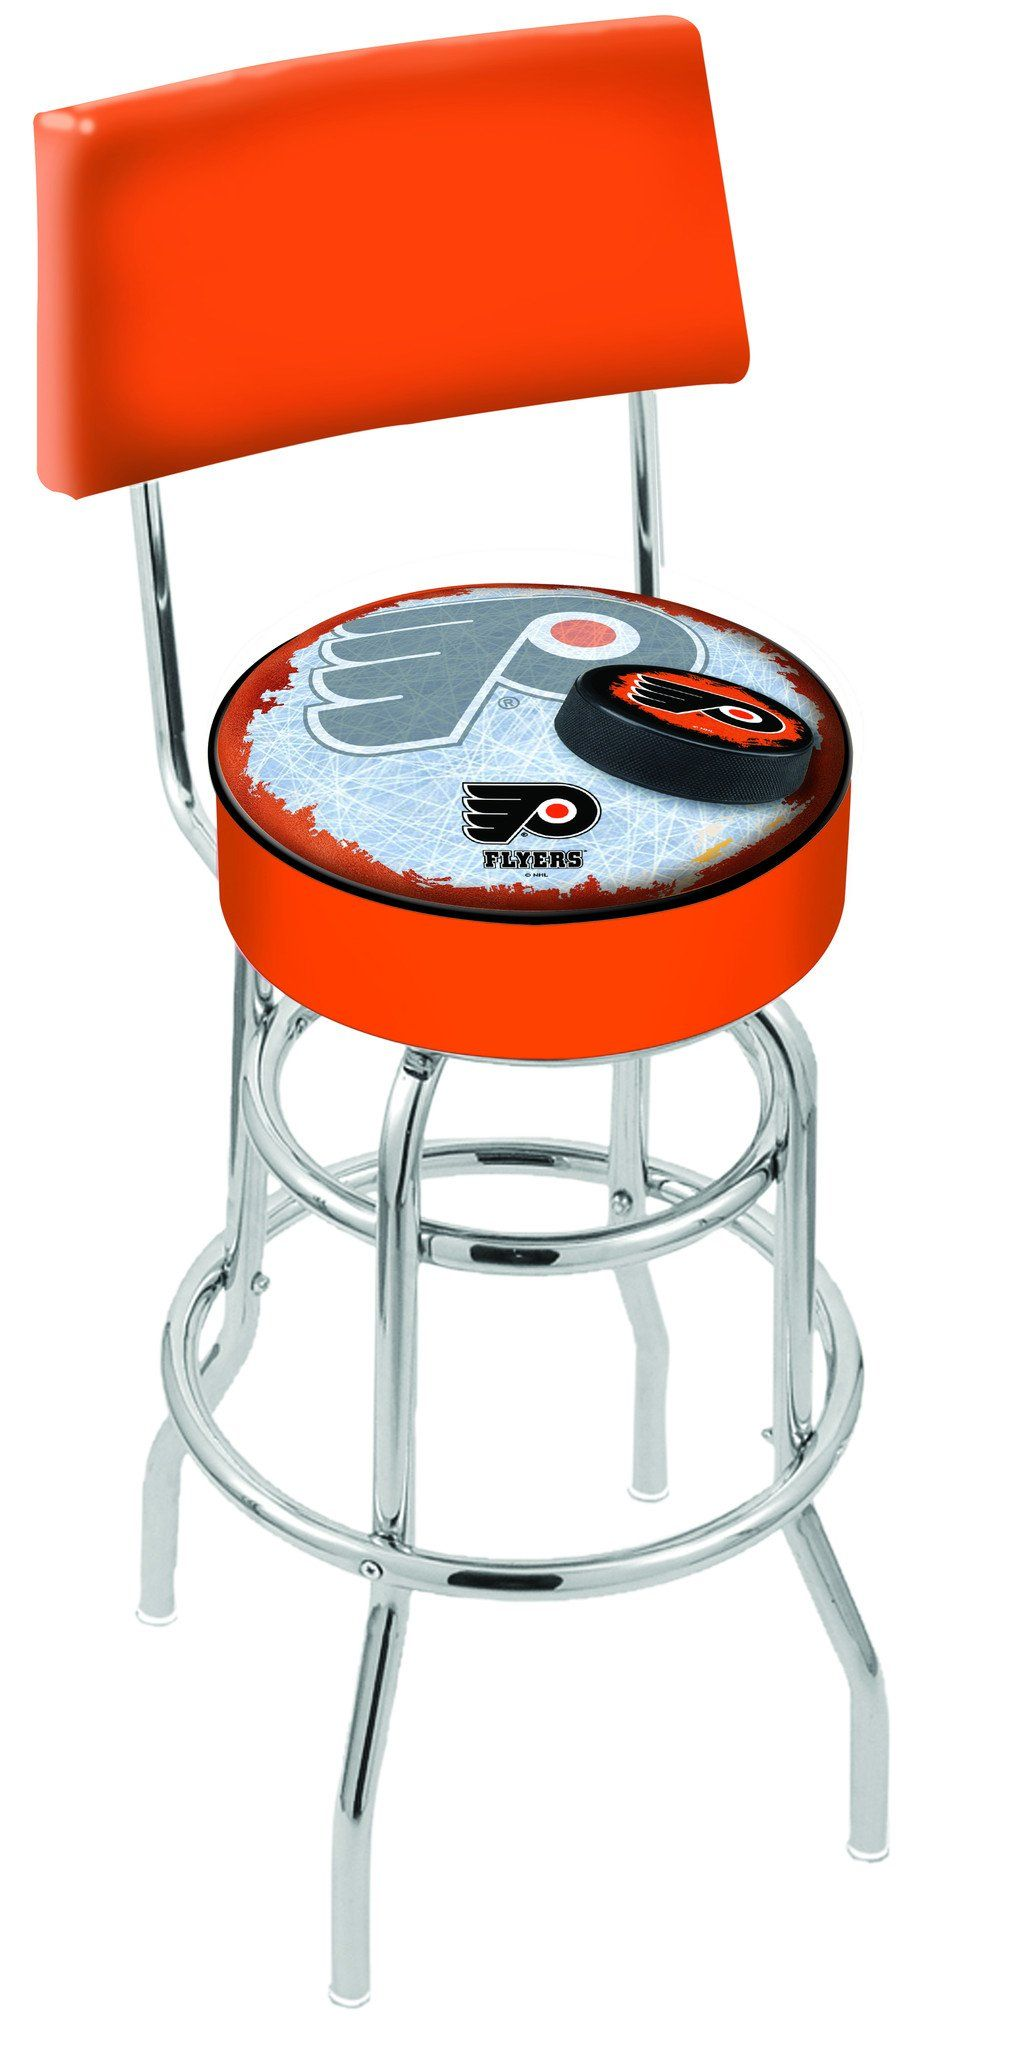 Philadelphia Flyers Bar Stool W Orange Background L7c425phifly O D2